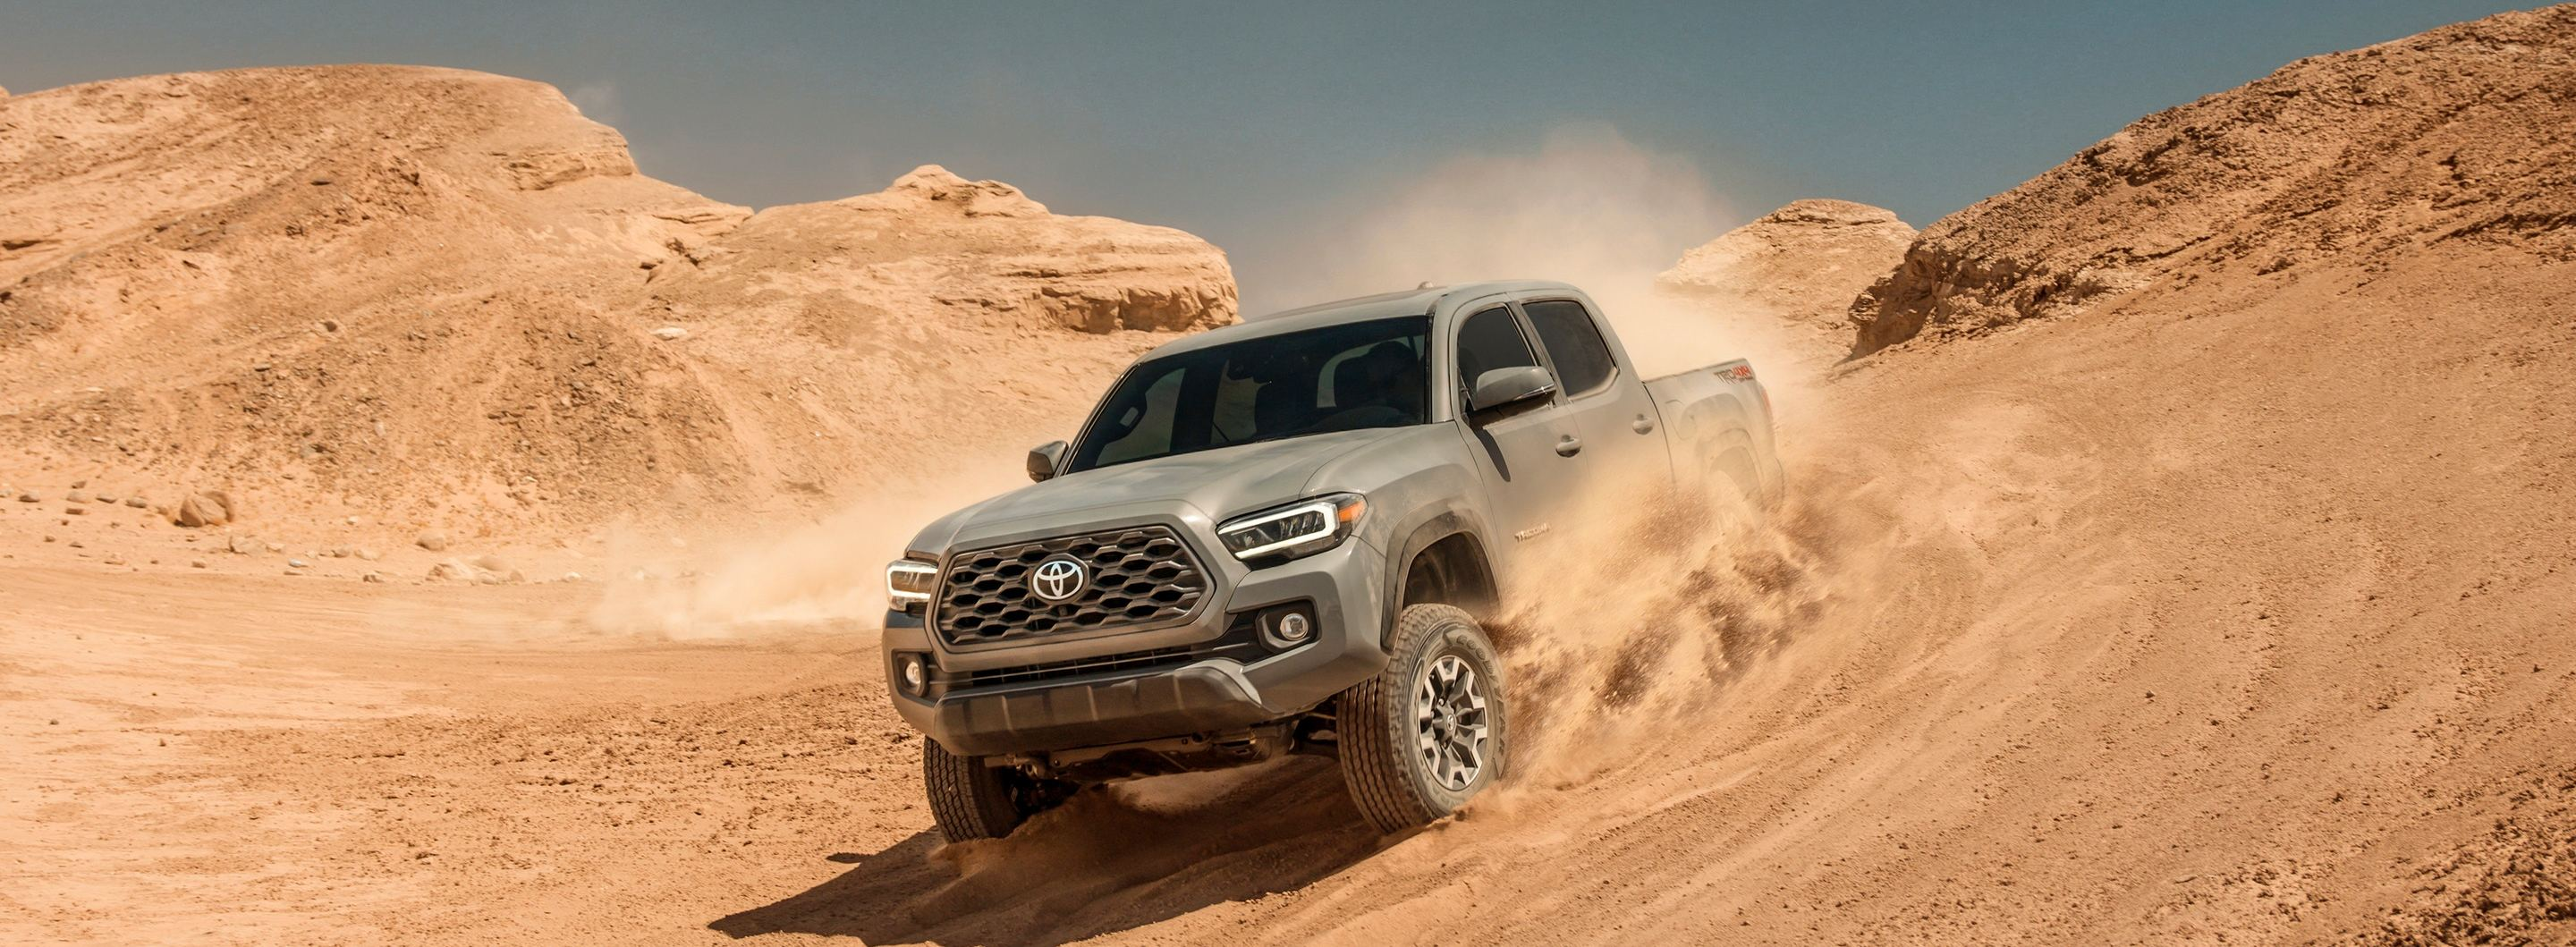 2020 Toyota Tacoma Key Features near Glen Mills, PA